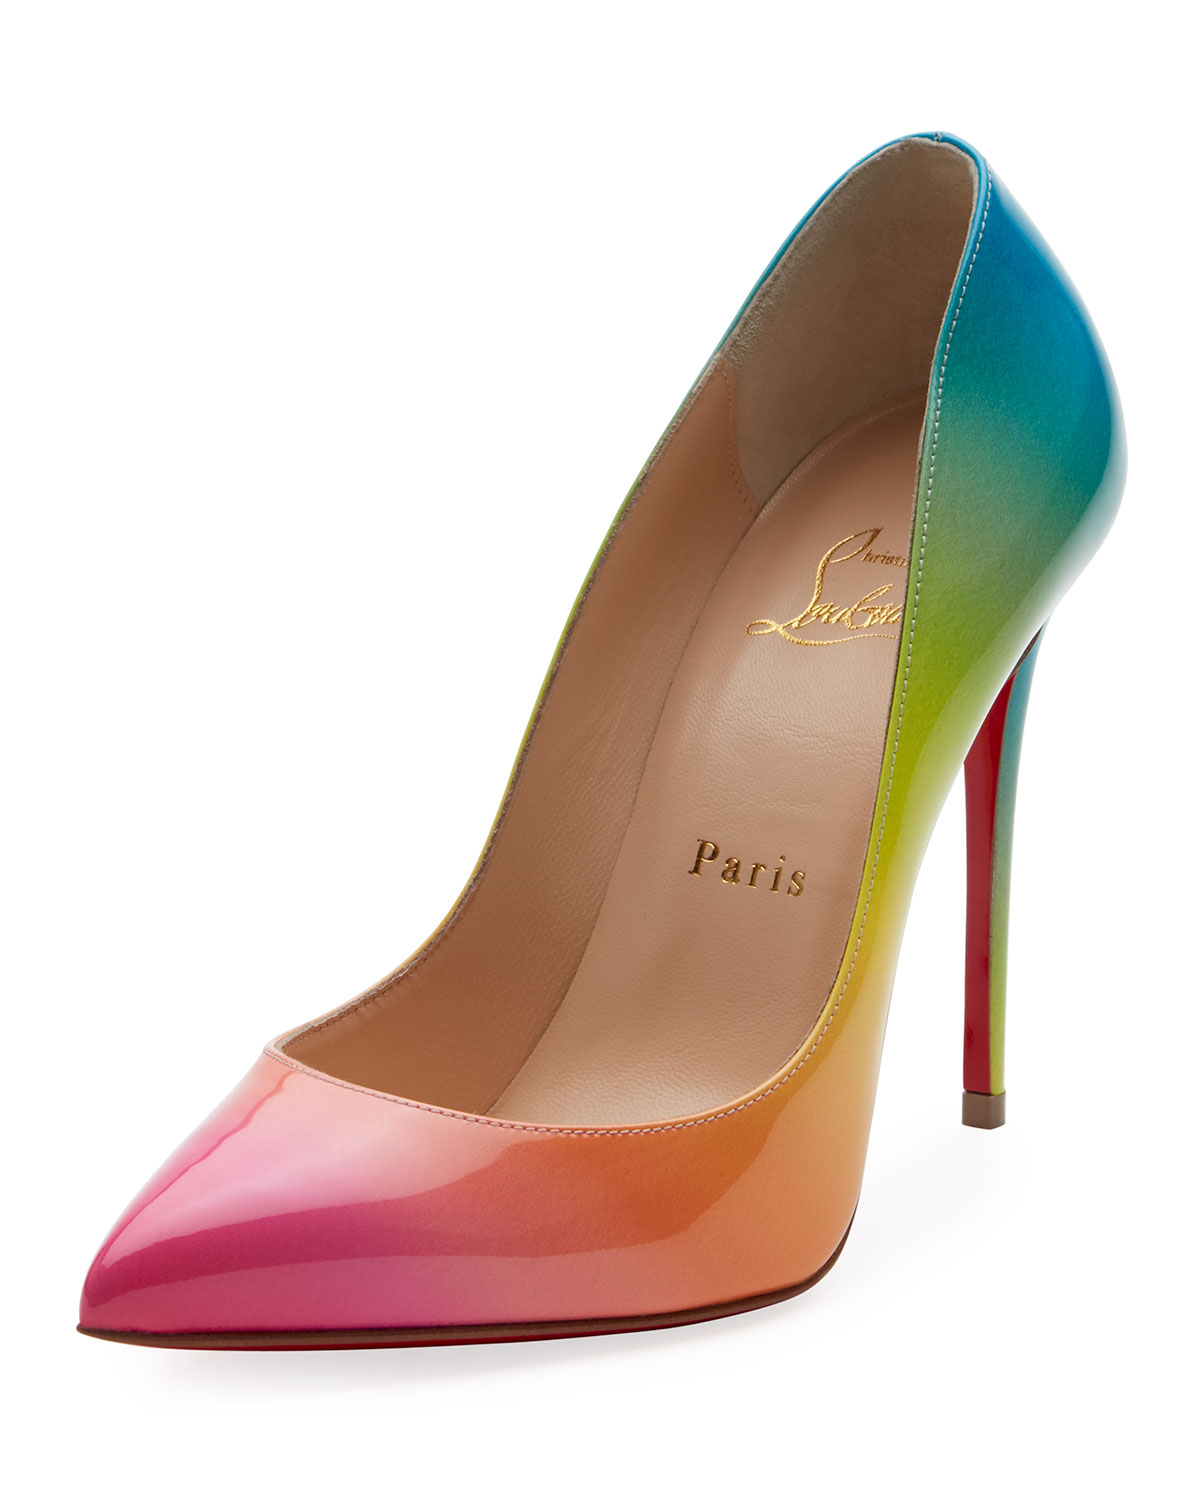 b4f79201292 Christian LouboutinPigalle Follies 100mm Ombre Patent Red Sole Pumps